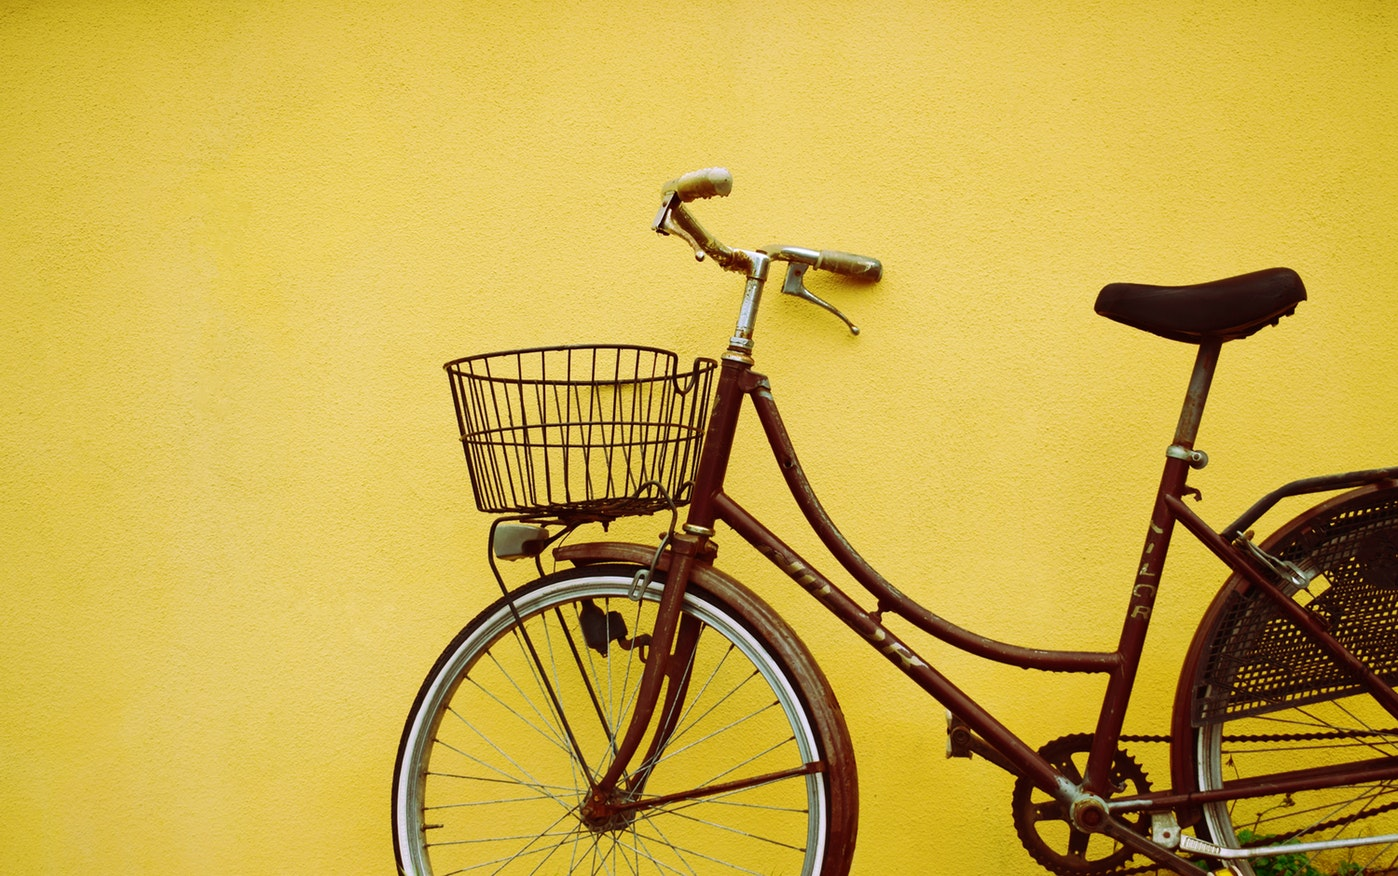 A bicycle against a yellow wall. Cycling is one of the exercises to help with arthritis